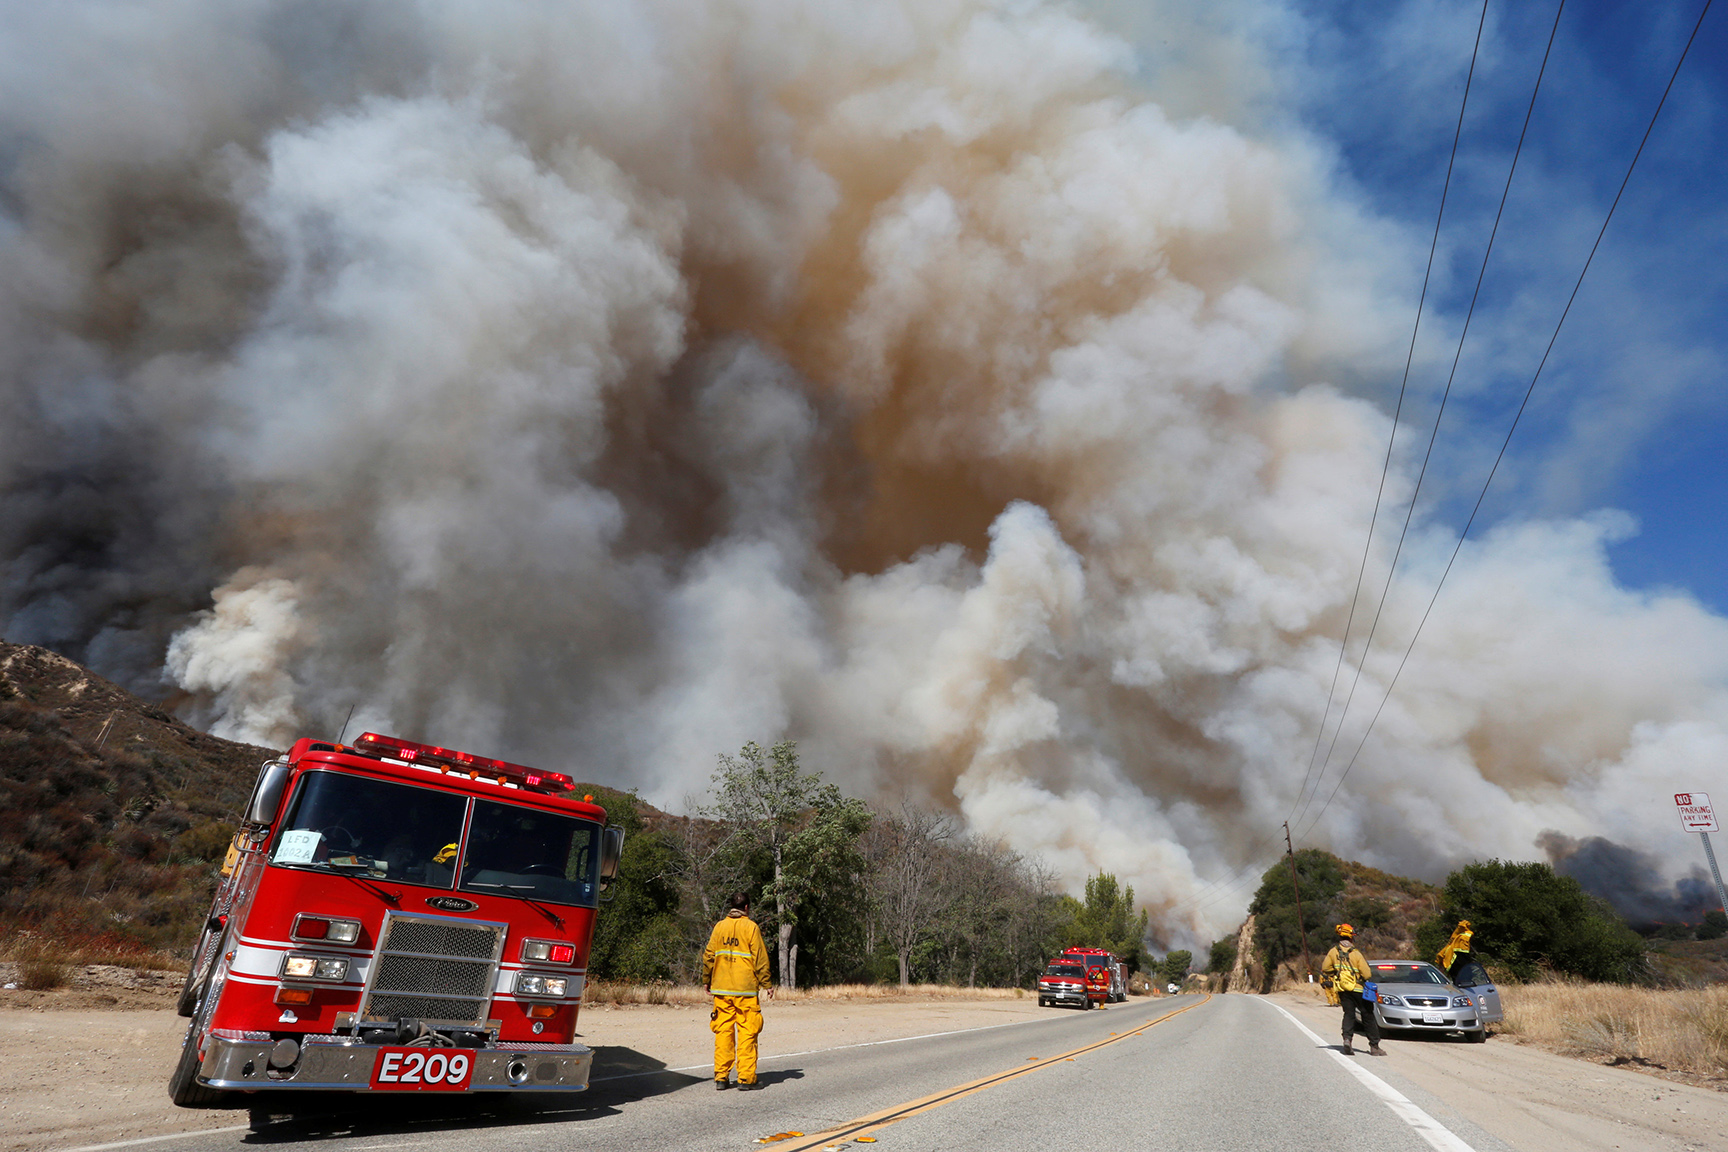 Crews battle the so-called Sand Fire in the Angeles National Forest near Los Angeles, California